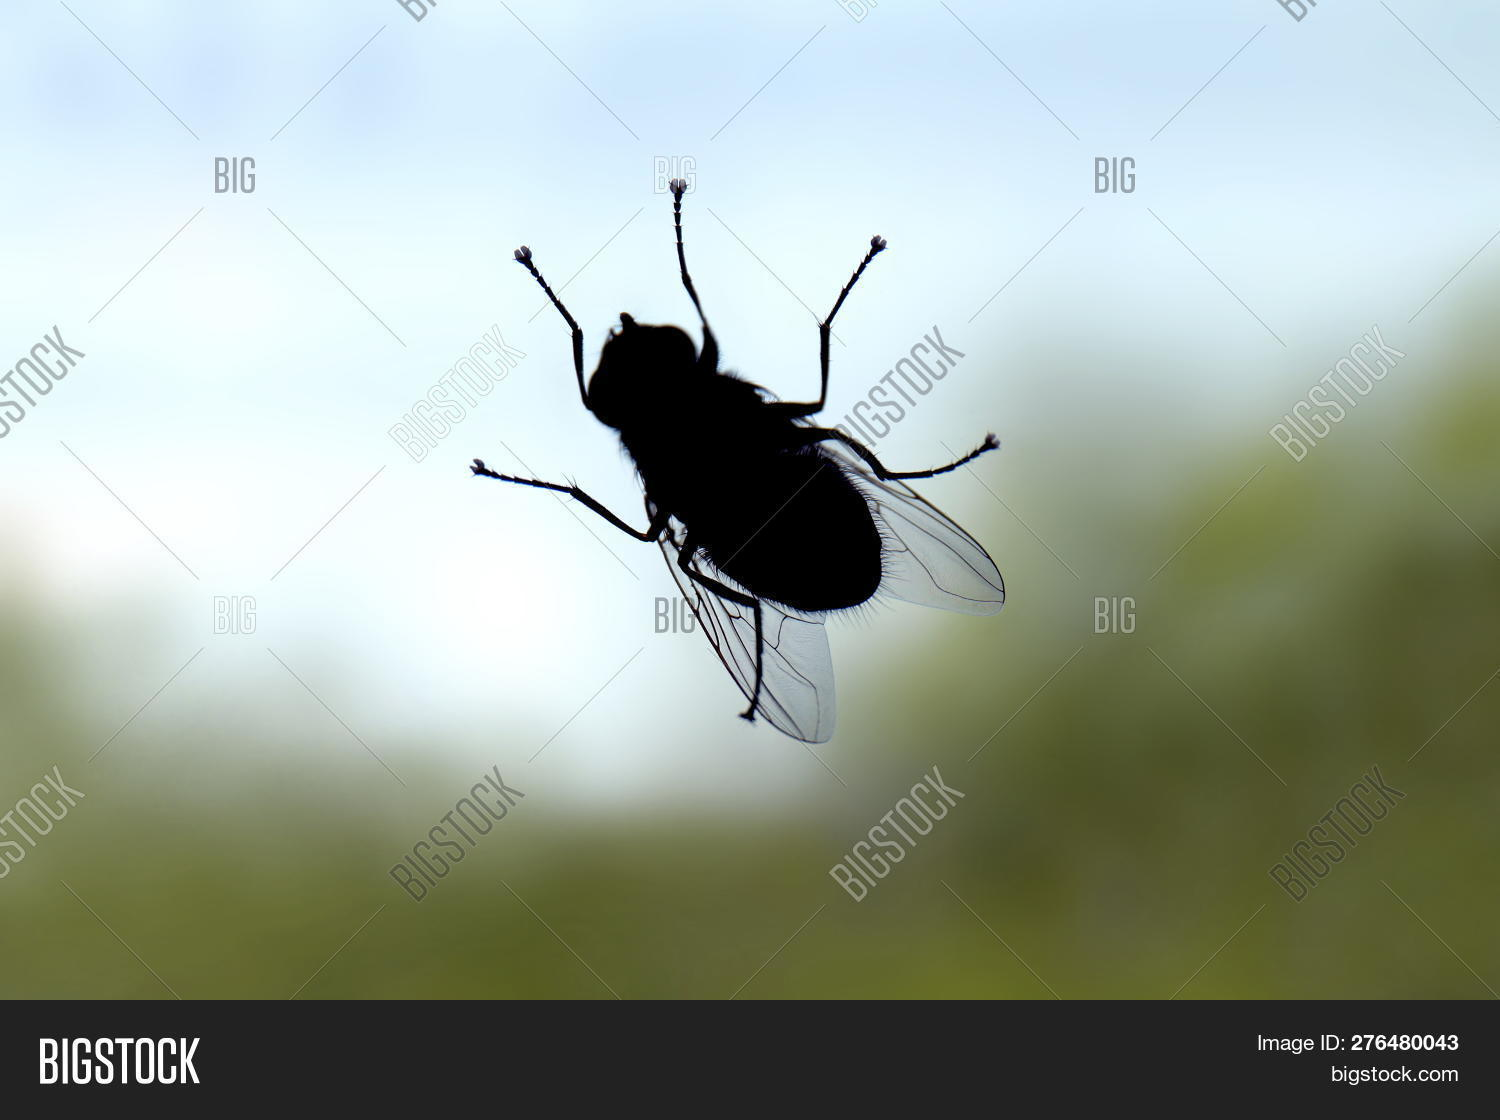 animal,art,background,black,blow,blue,bug,closeup,color,design,detail,drawing,drosophila,element,eye,fly,fruit,gen,gene,genetic,graphic,green,house,icon,image,insect,isolated,live,macro,manipulation,melanogaster,natural,nature,pest,portrait,red,retro,shot,sign,small,studio,style,symbol,vintage,white,wildlife,wing